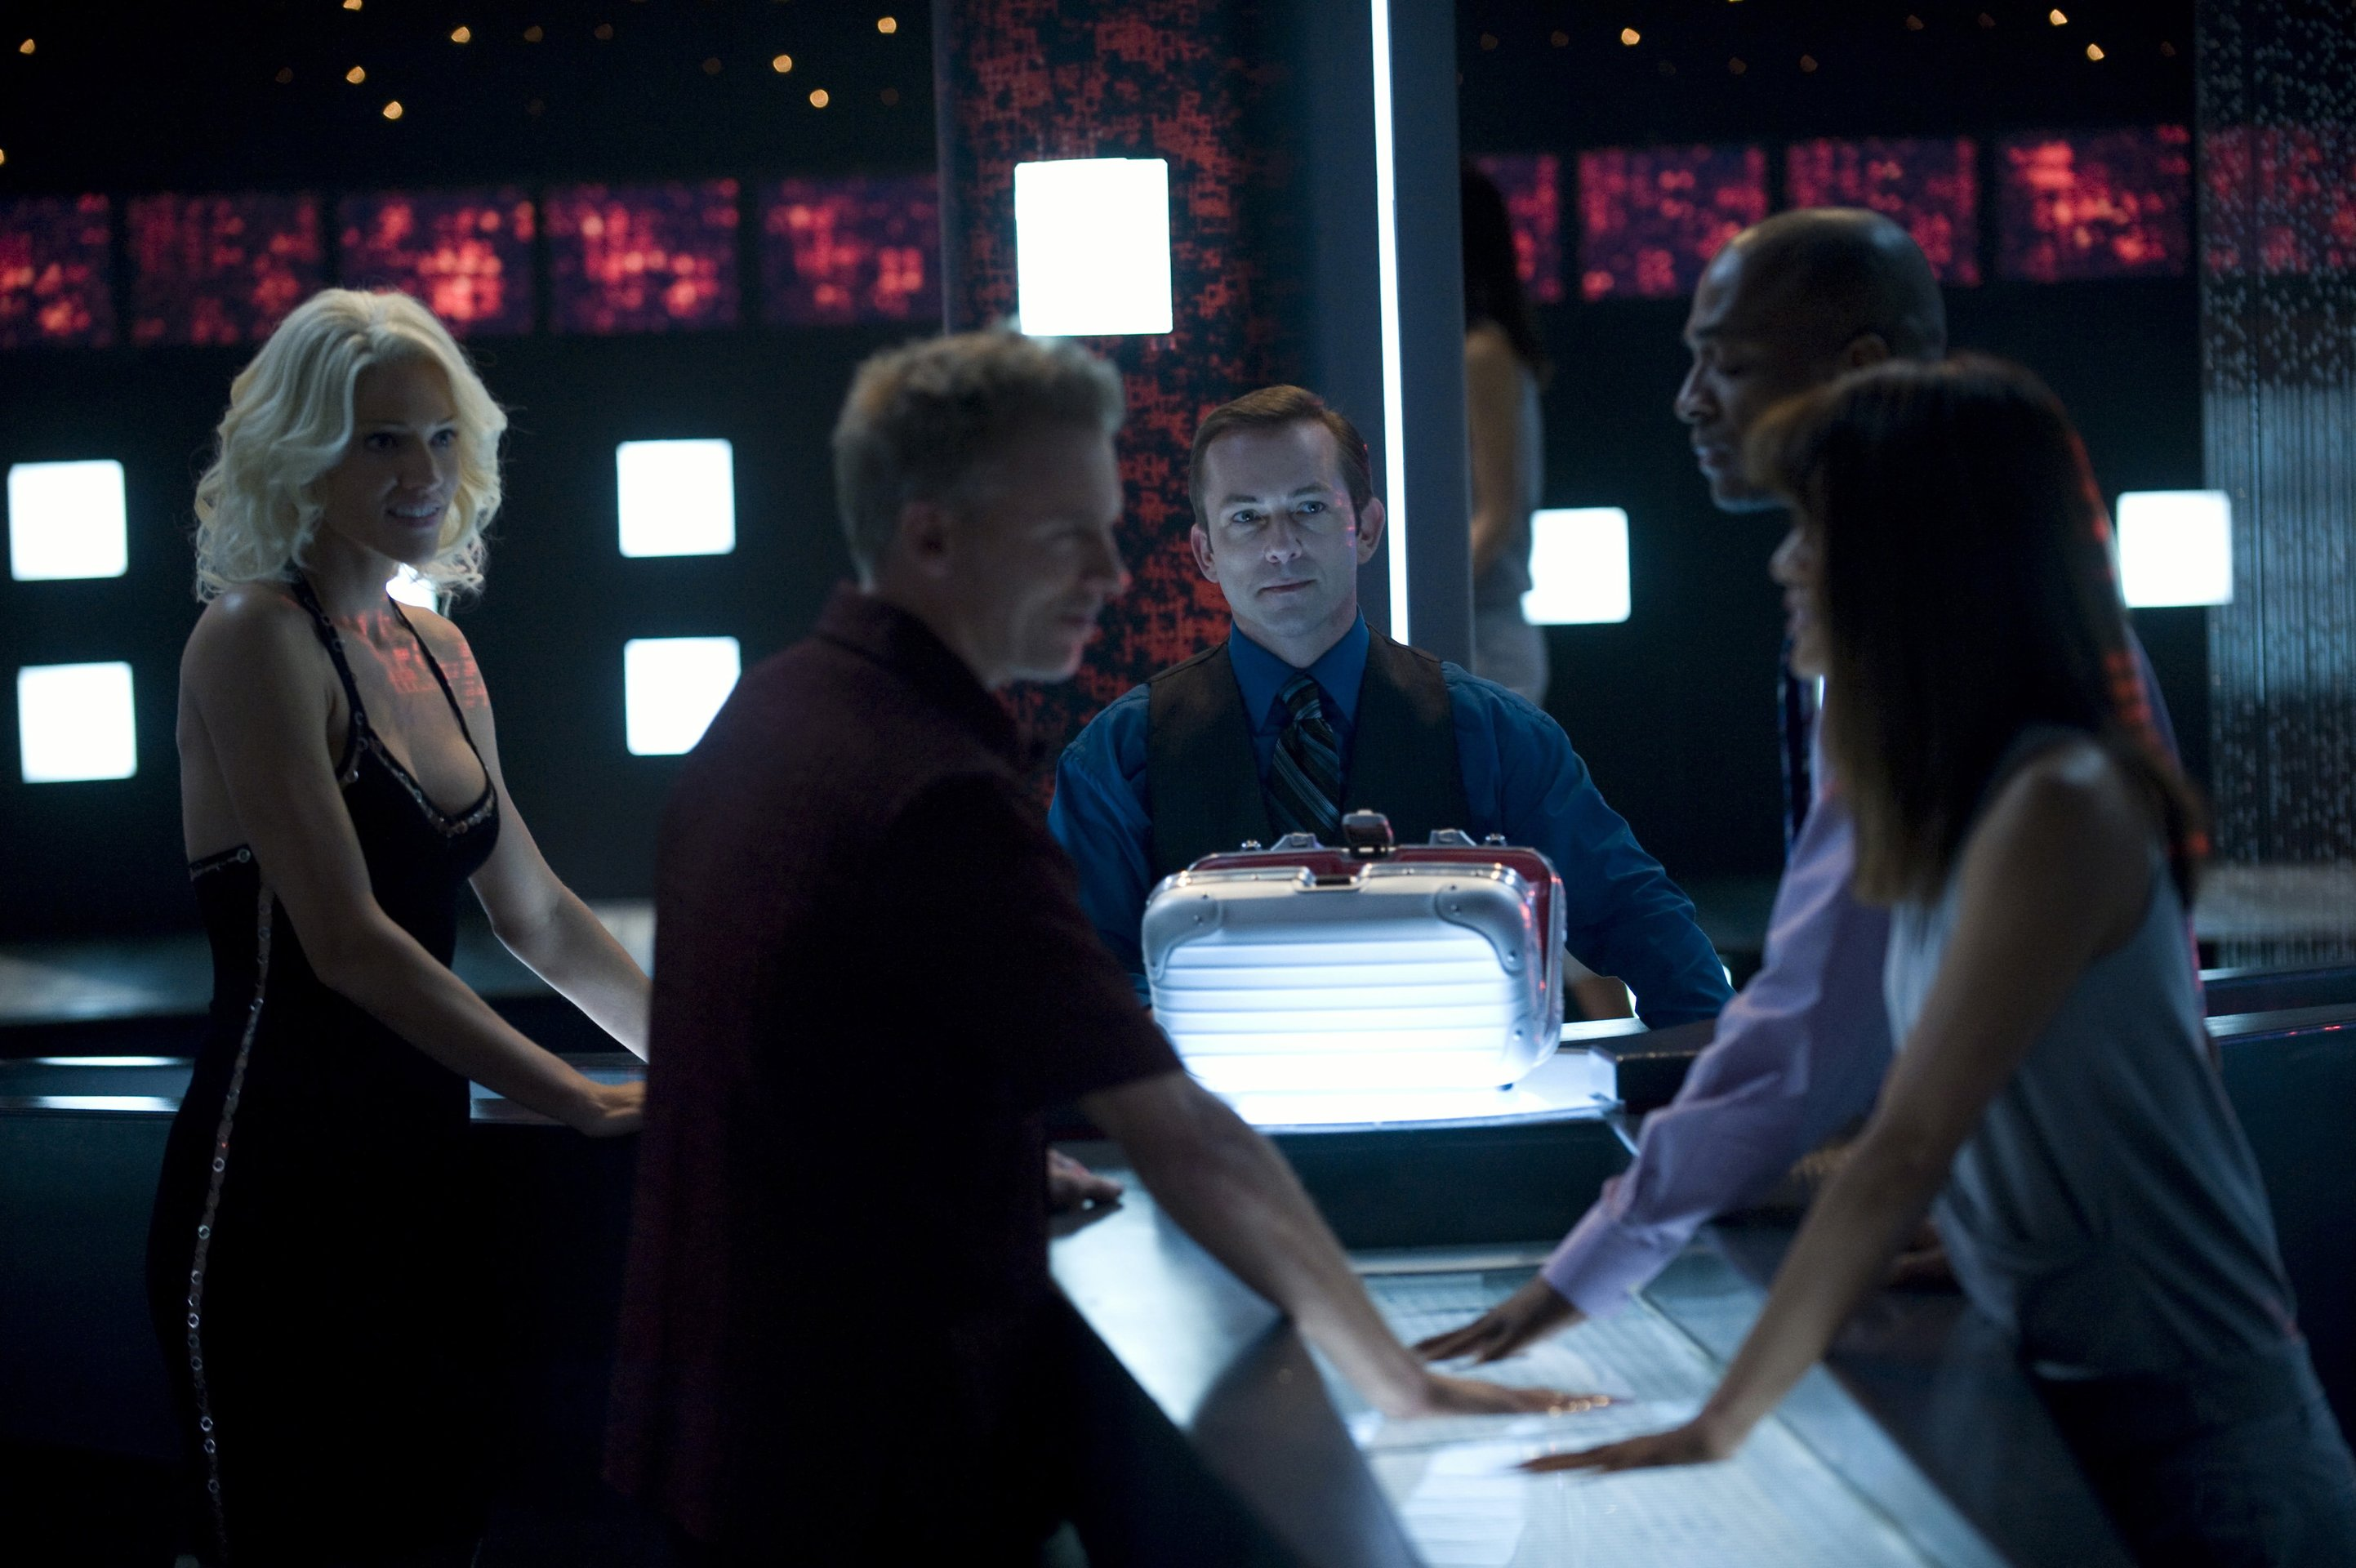 The Cylons - (l to r) No 6 (Tricia Helfer), No 2 (Callum Keith Rennie), No 5 (Matthew Bennett), No 4 (Rick Worthy) and Sharon Valerii (Grace Park) in Battlestar Galactica: The Plan (2009)